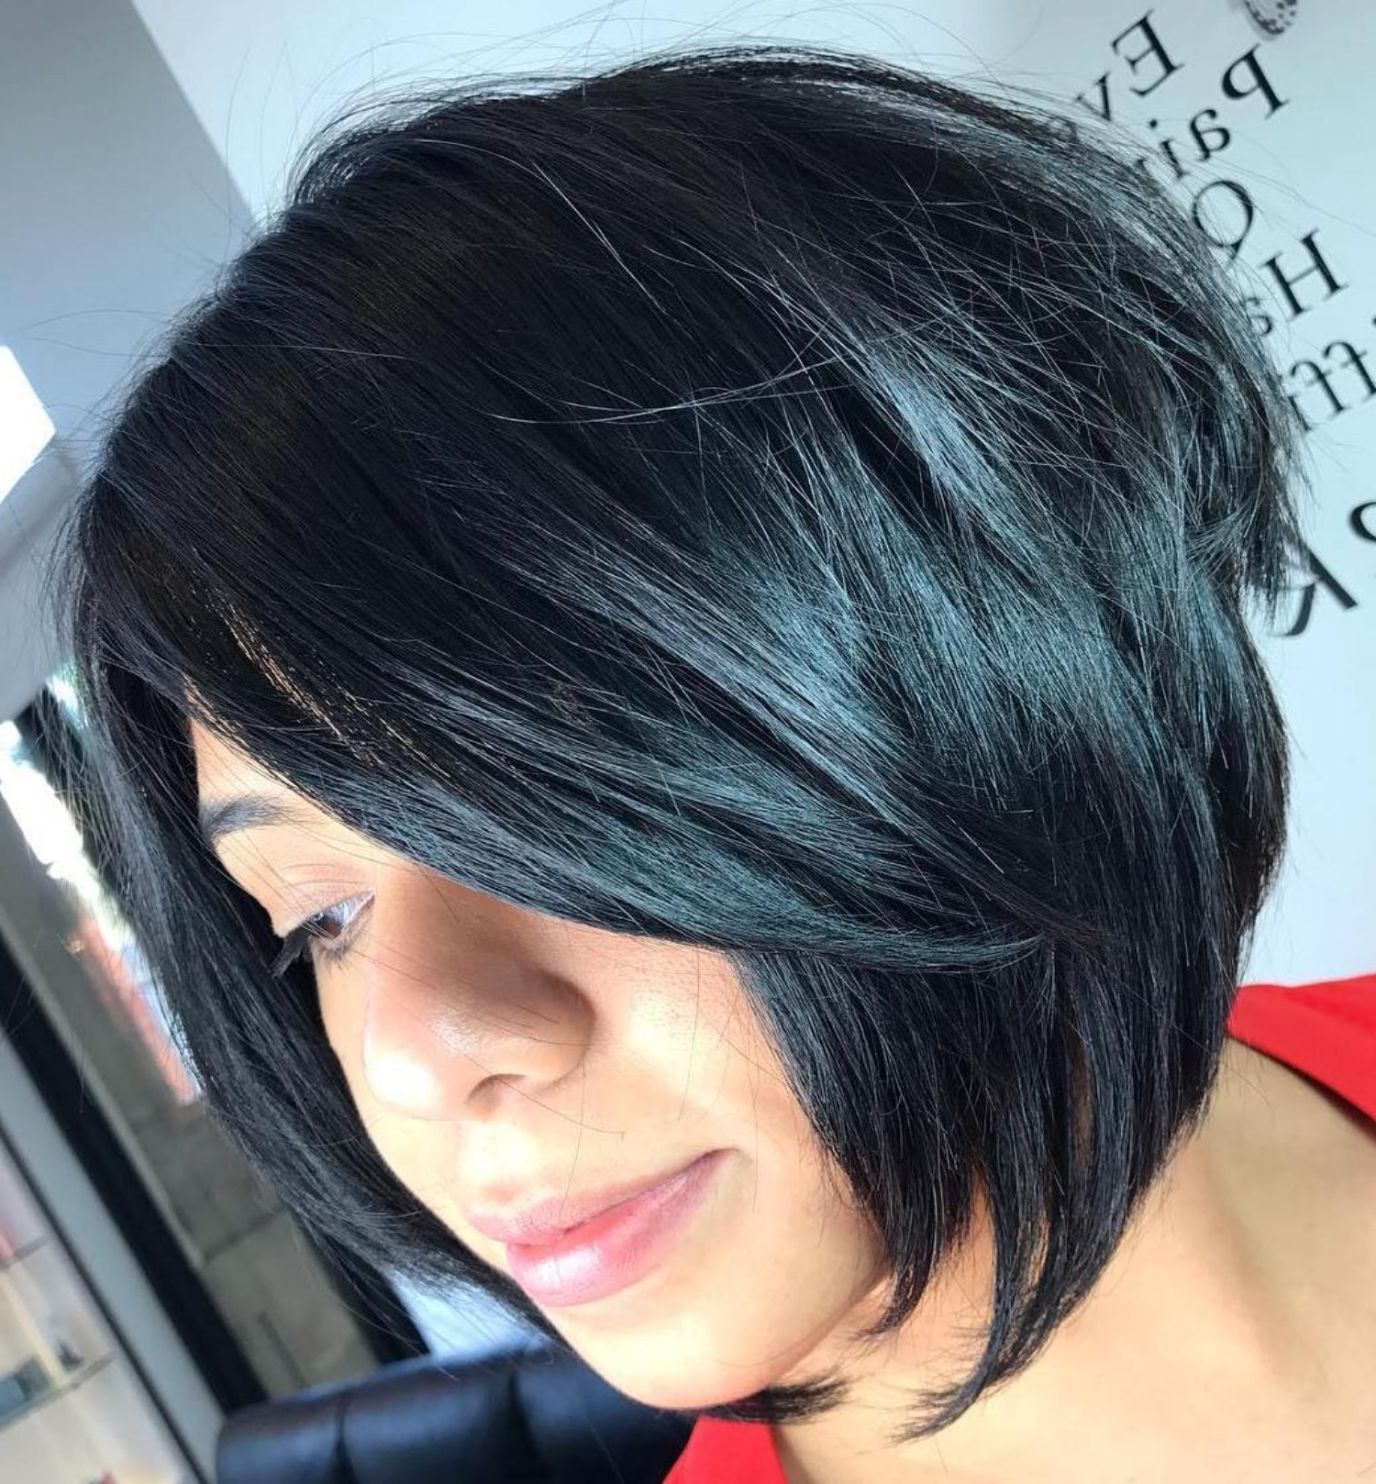 Hair Throughout Famous Jet Black Chin Length Sleek Bob Hairstyles (View 8 of 20)